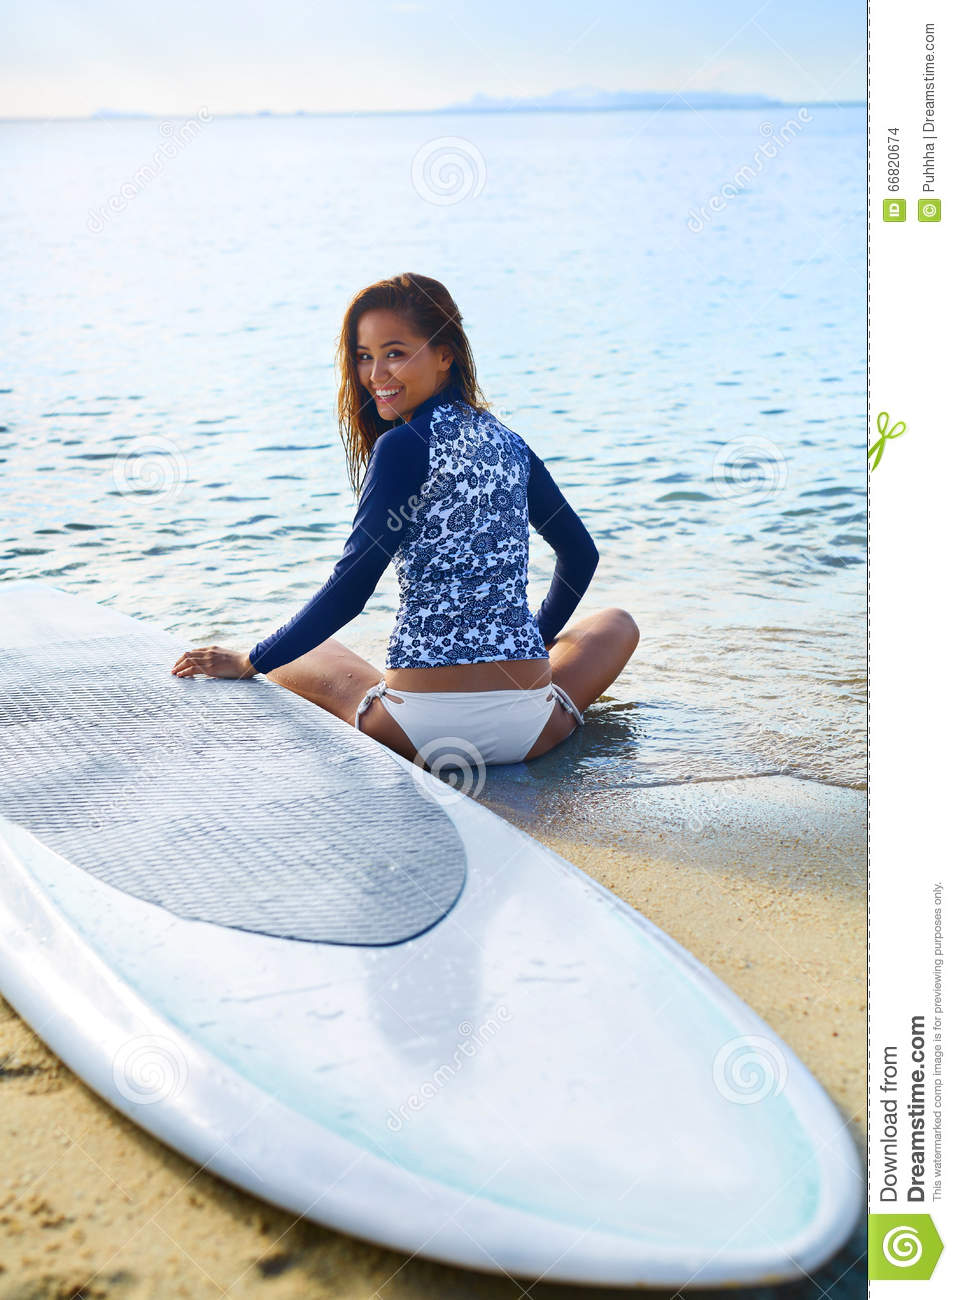 Summer Leisure Sport Activity Happy Woman With Surfboard On